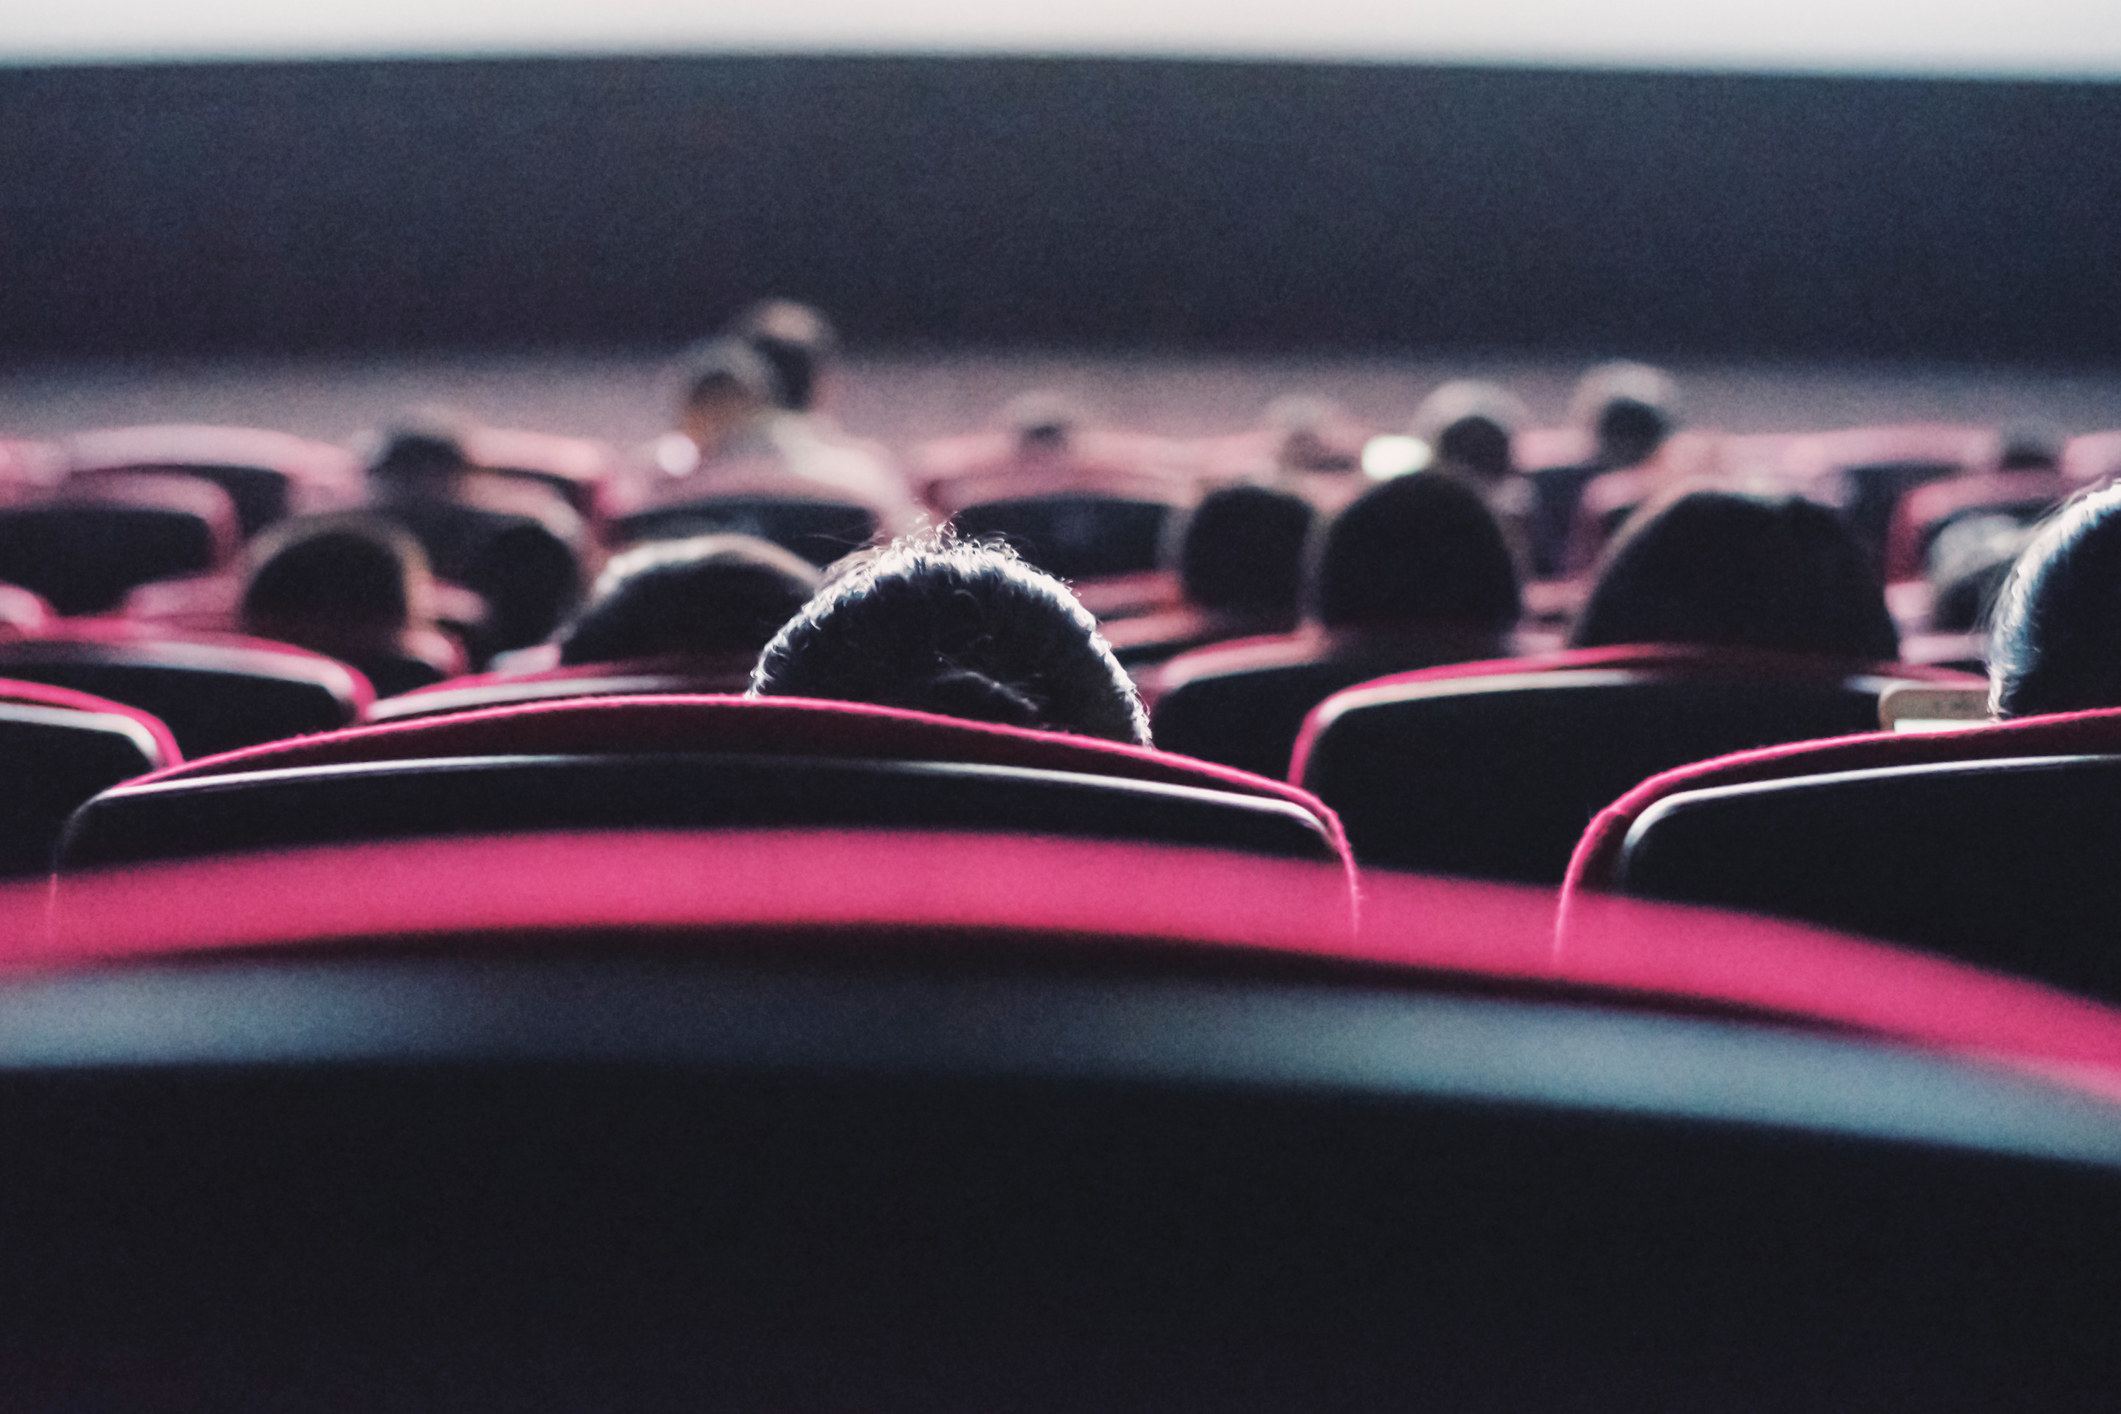 A view of the backs of movie theater seats with people sitting in them